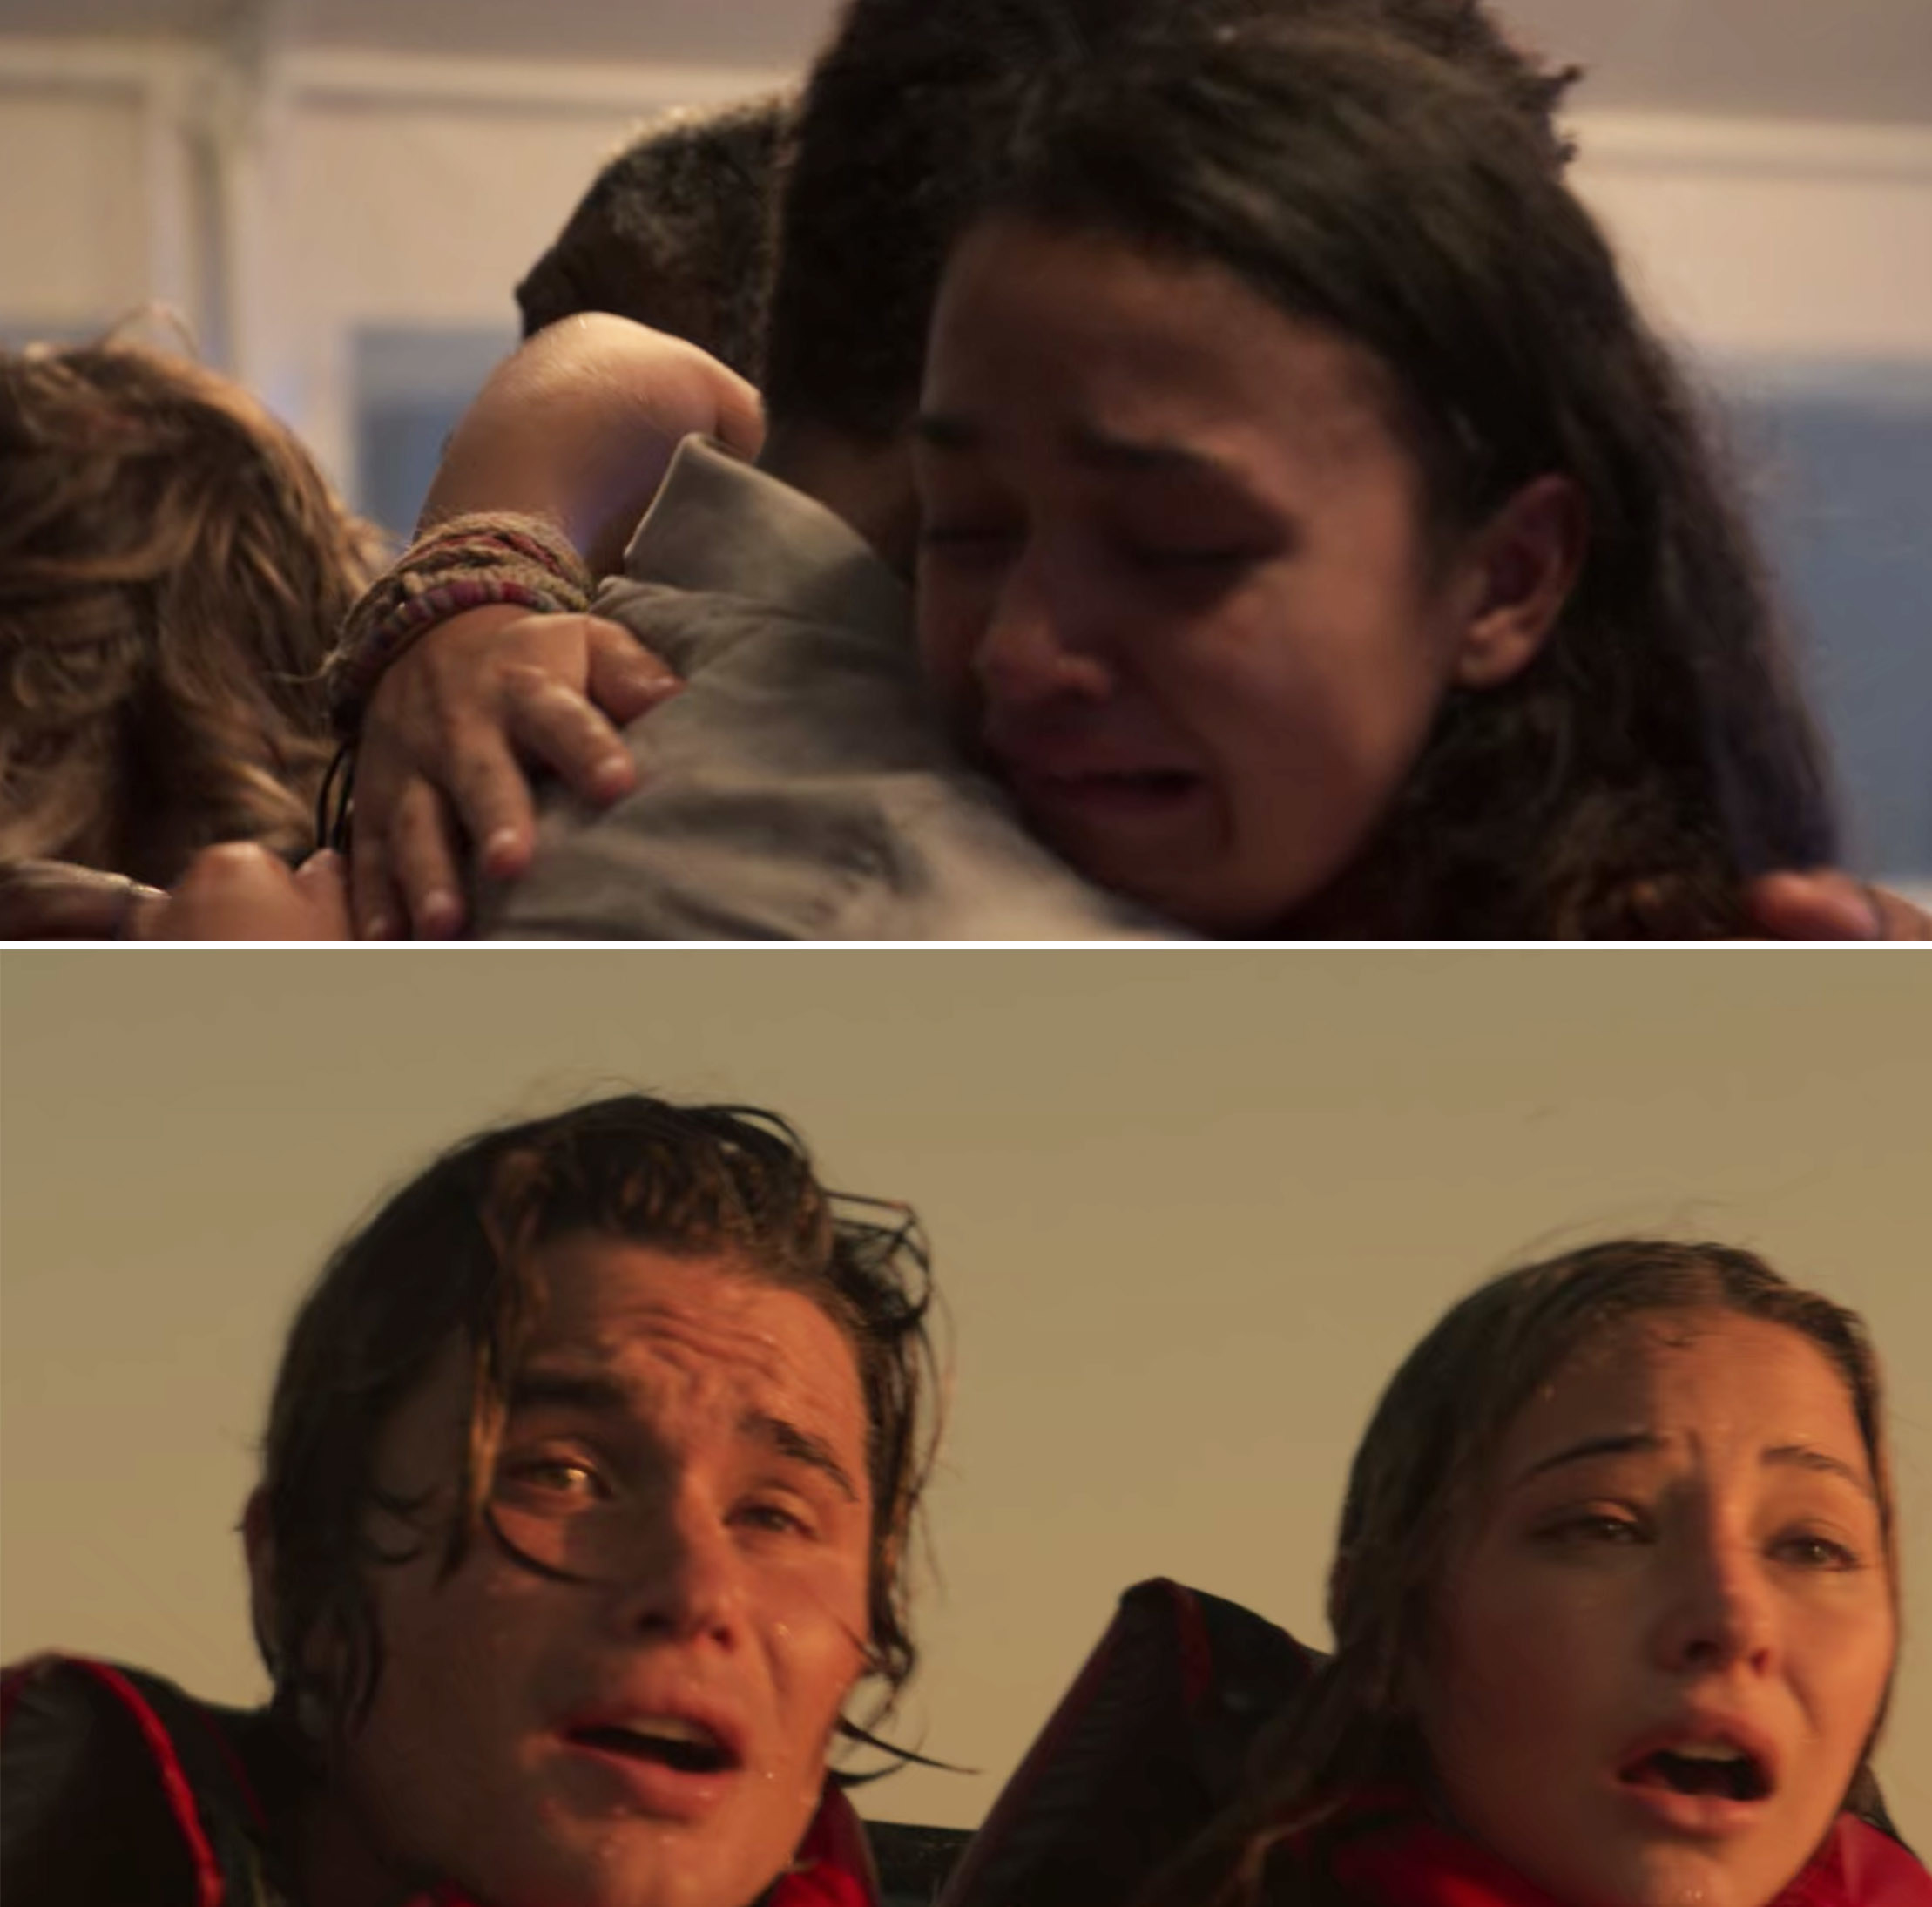 Kie crying in Pope's arms and John B and Sarah looking relieved after seeing a boat